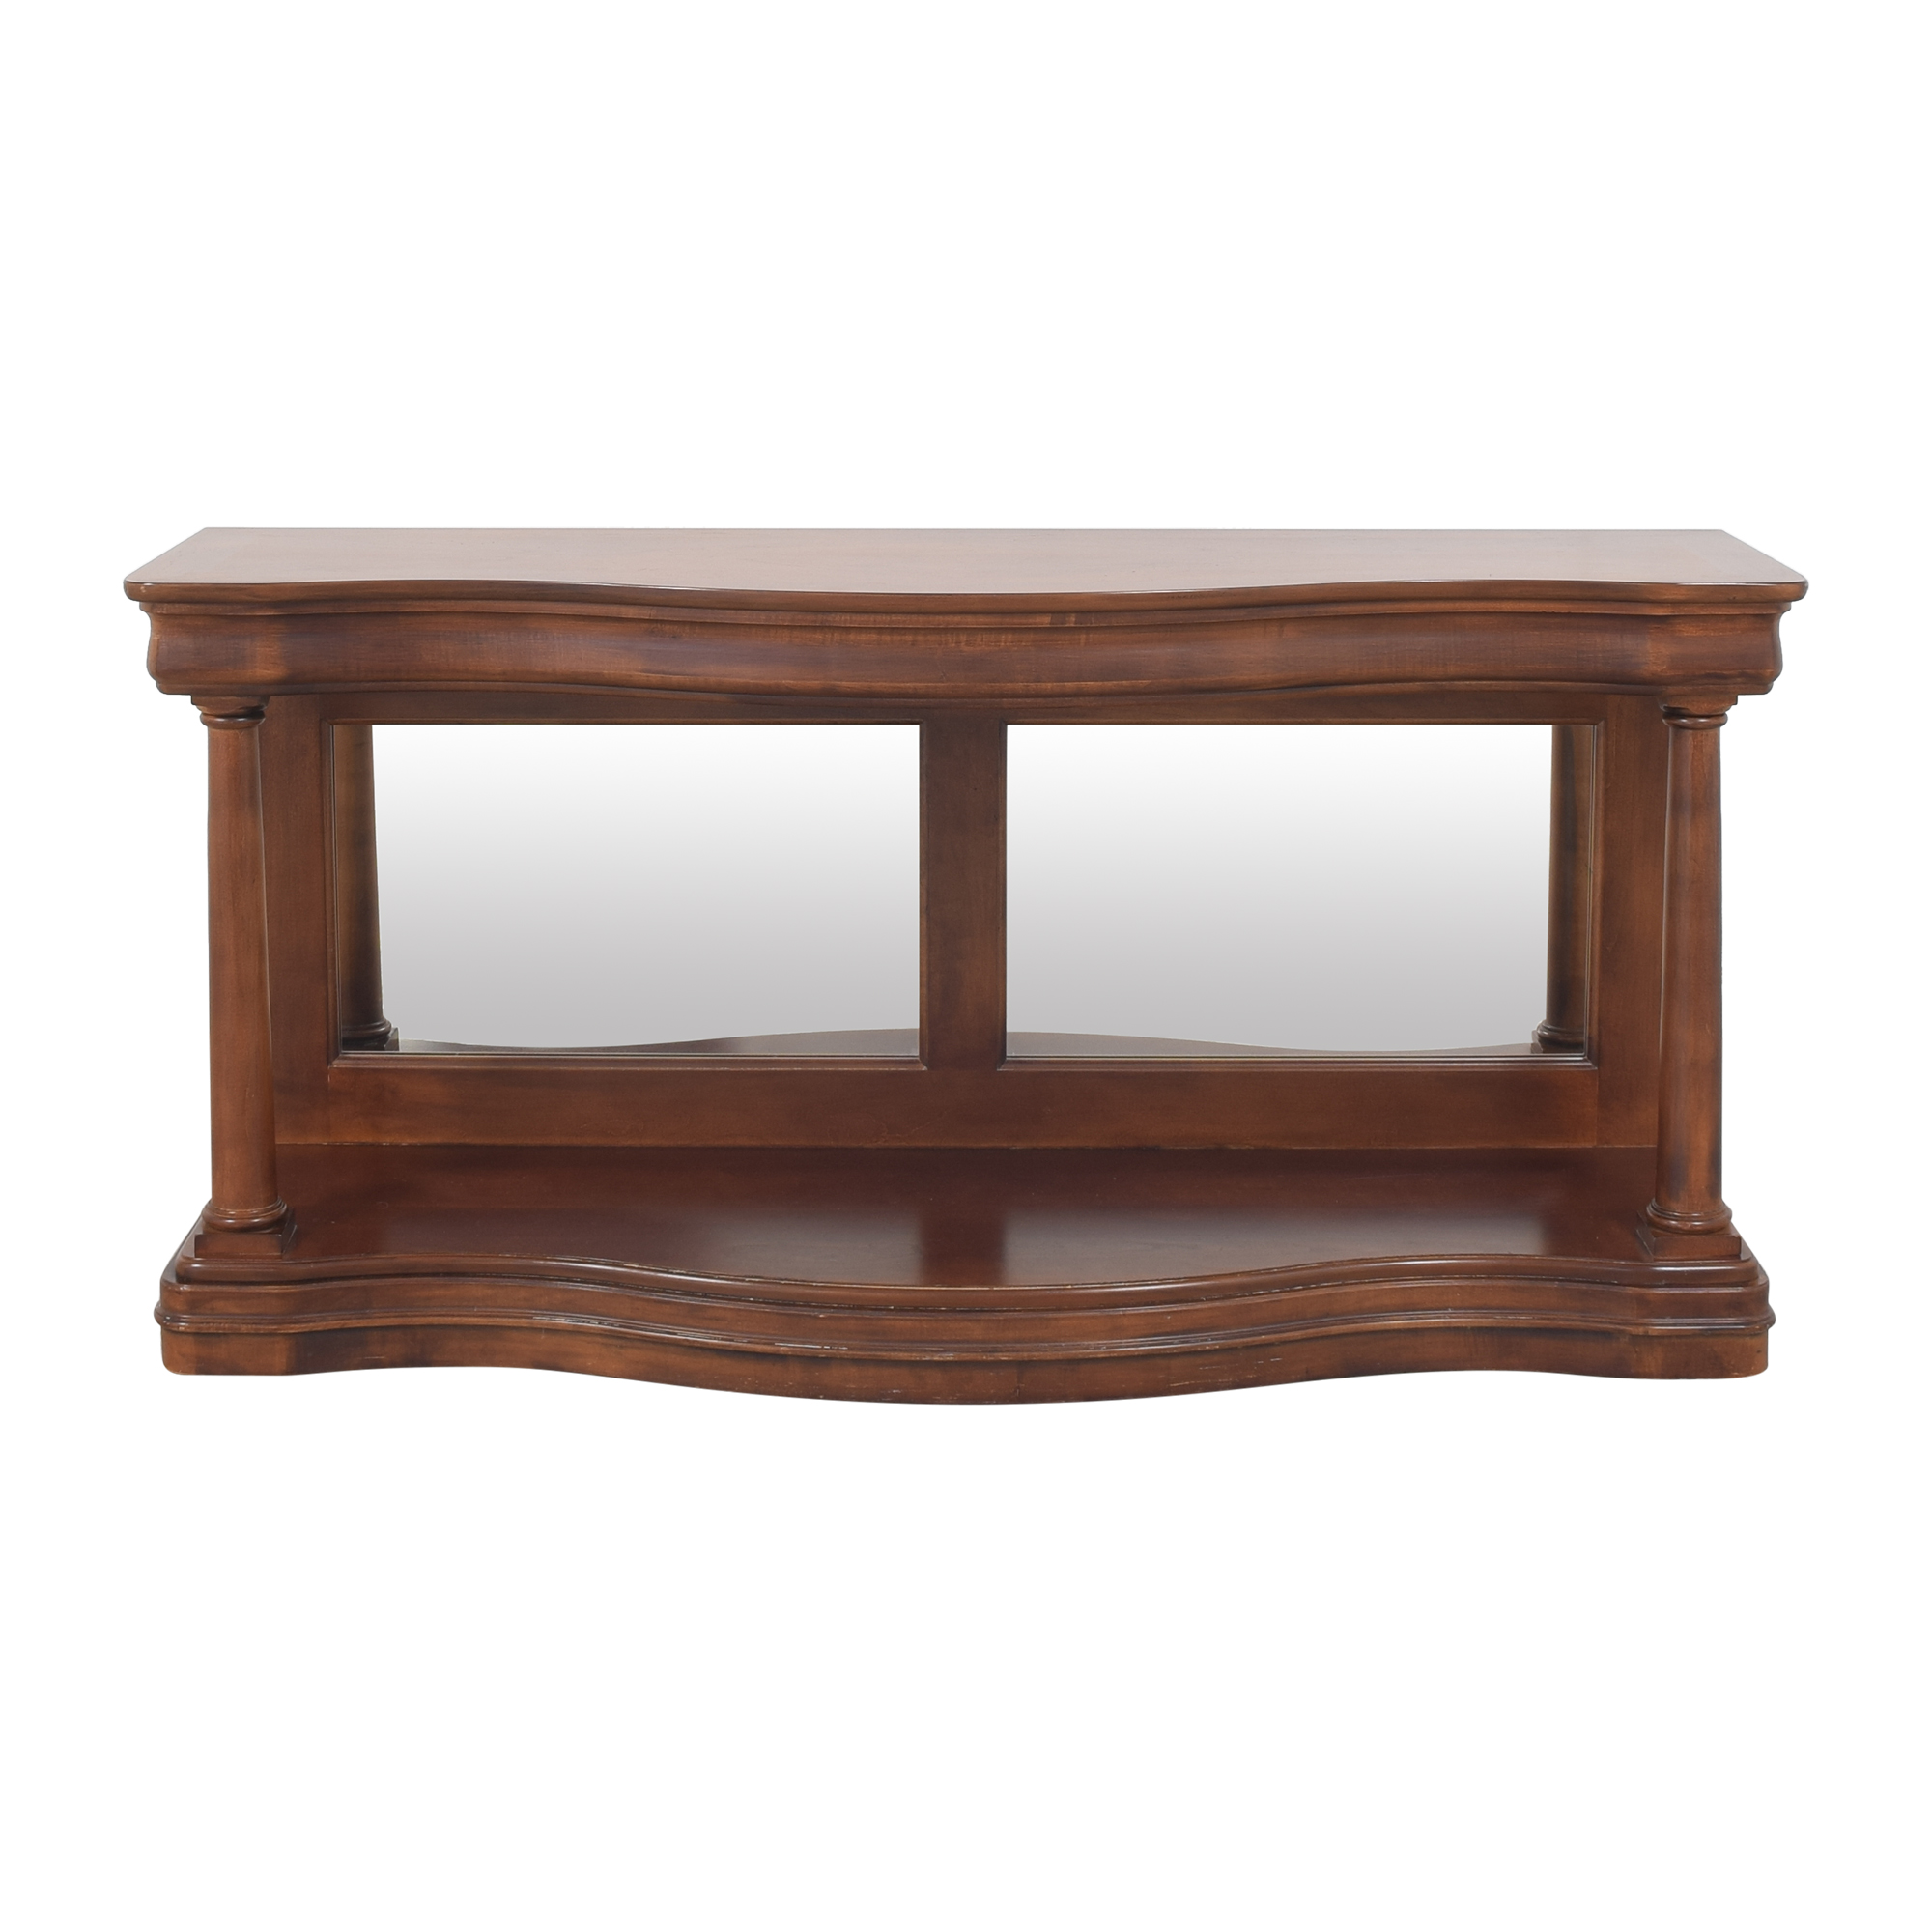 buy Drexel Heritage Mirrored Accent Table Drexel Heritage Accent Tables